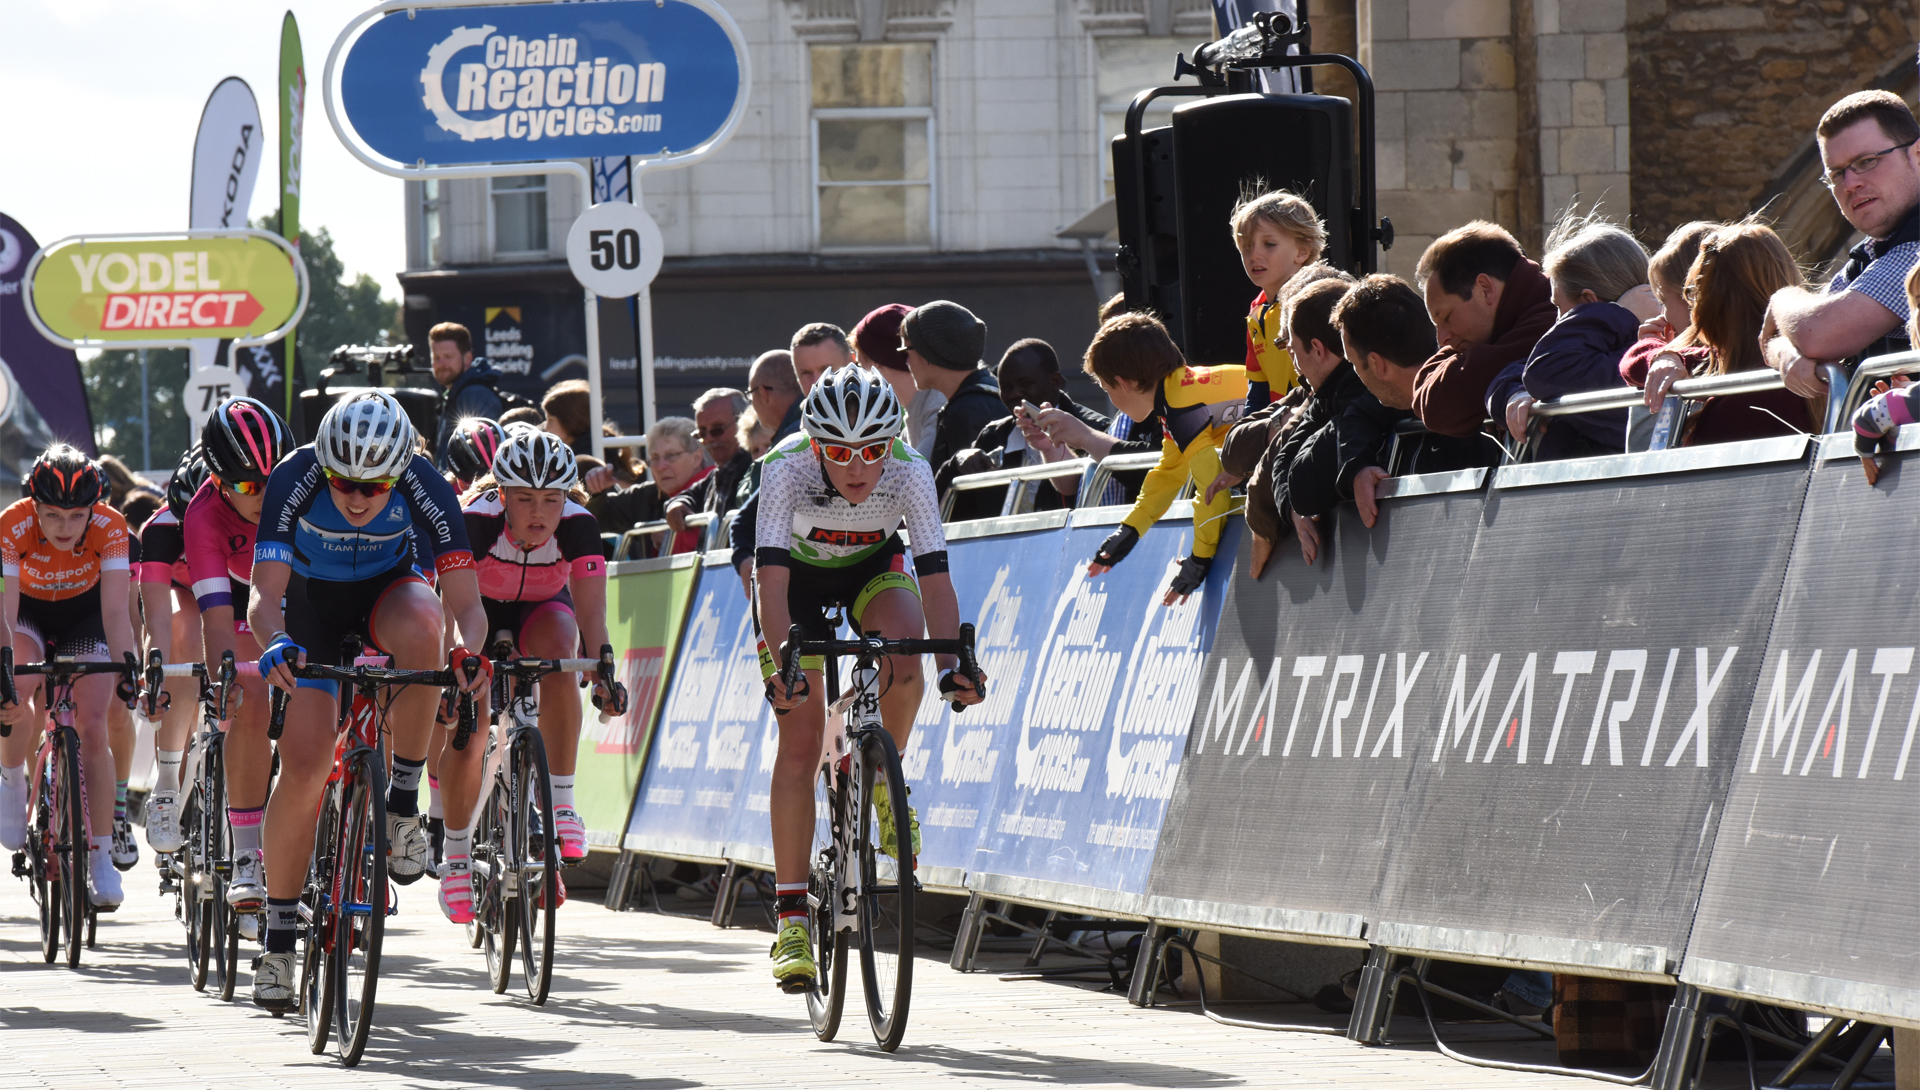 Matrix Fitness extends title sponsorship of leading women's cycling events